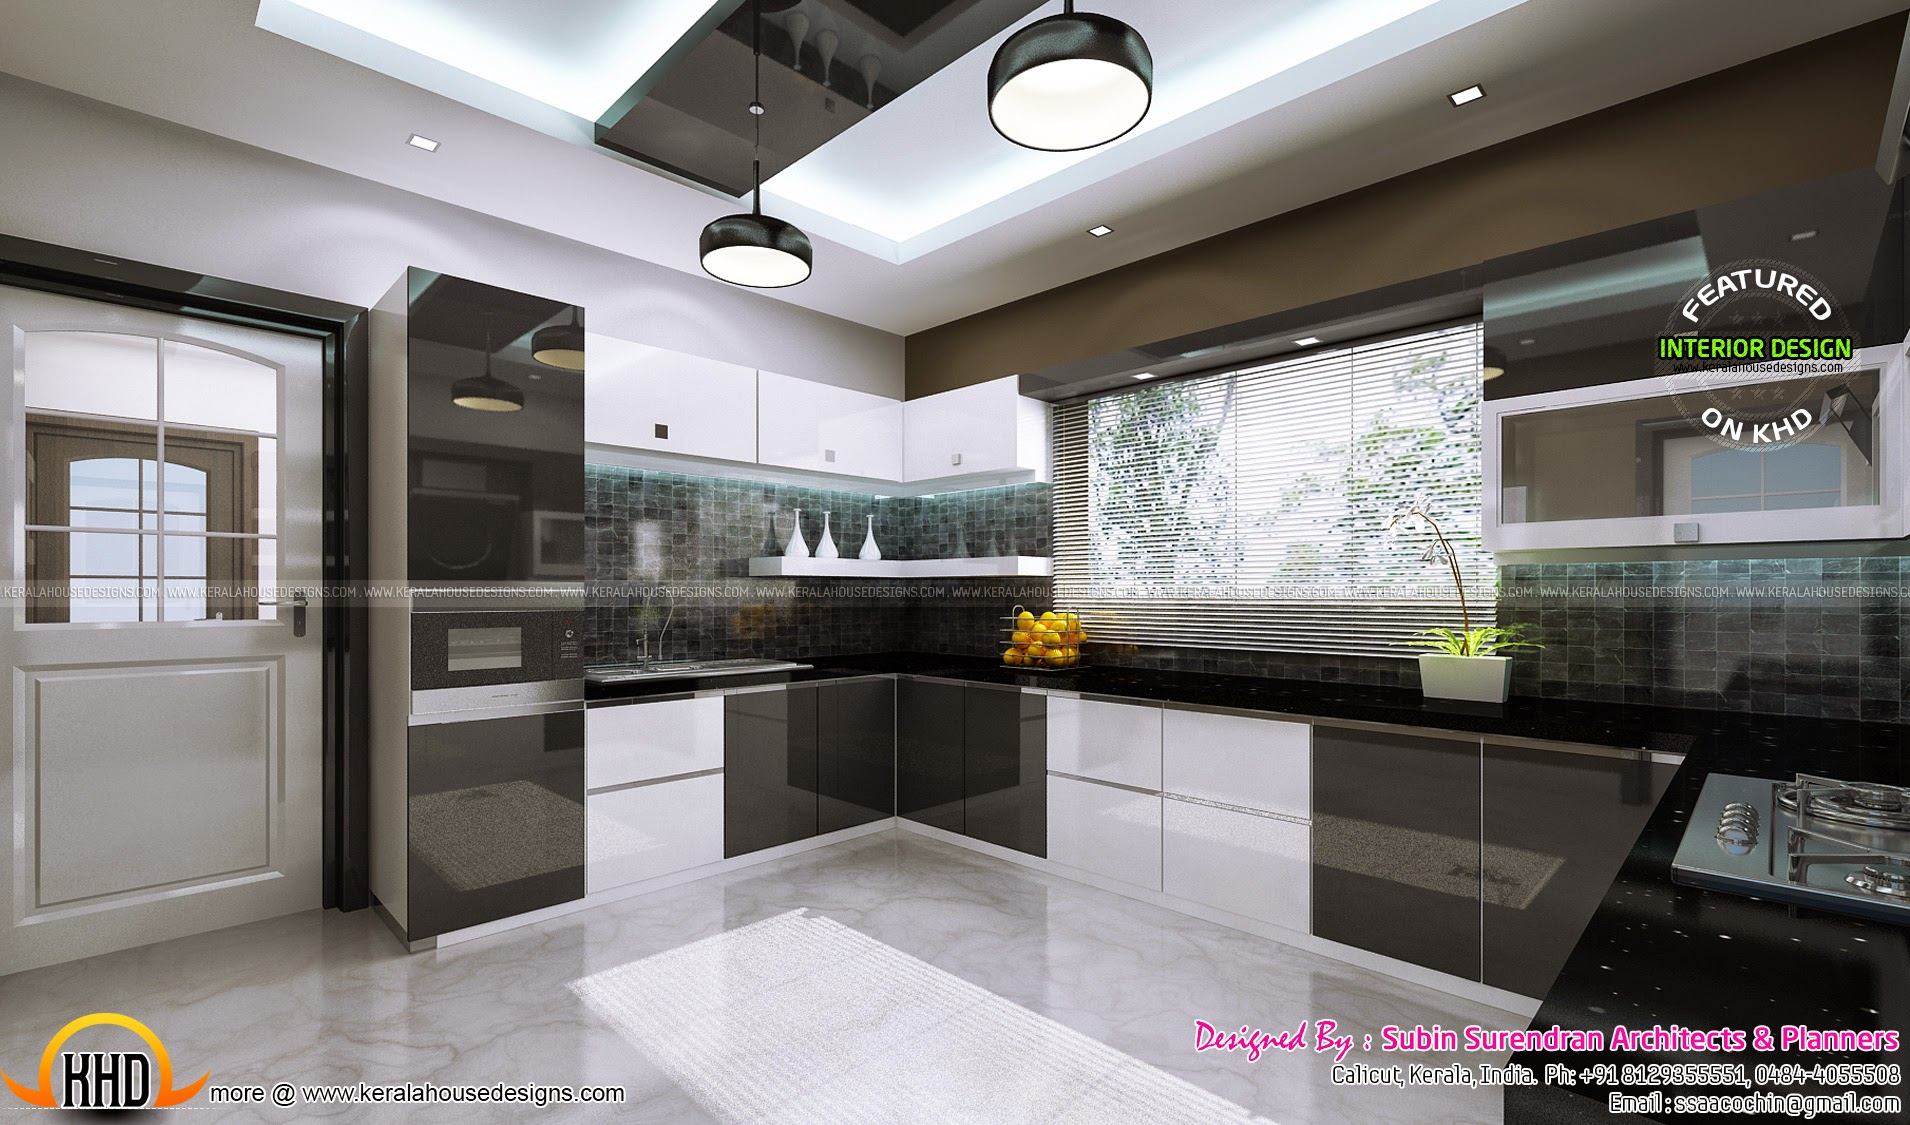 Interior bedroom kitchen dining kerala home design - Kitchen interior designs pictures ...